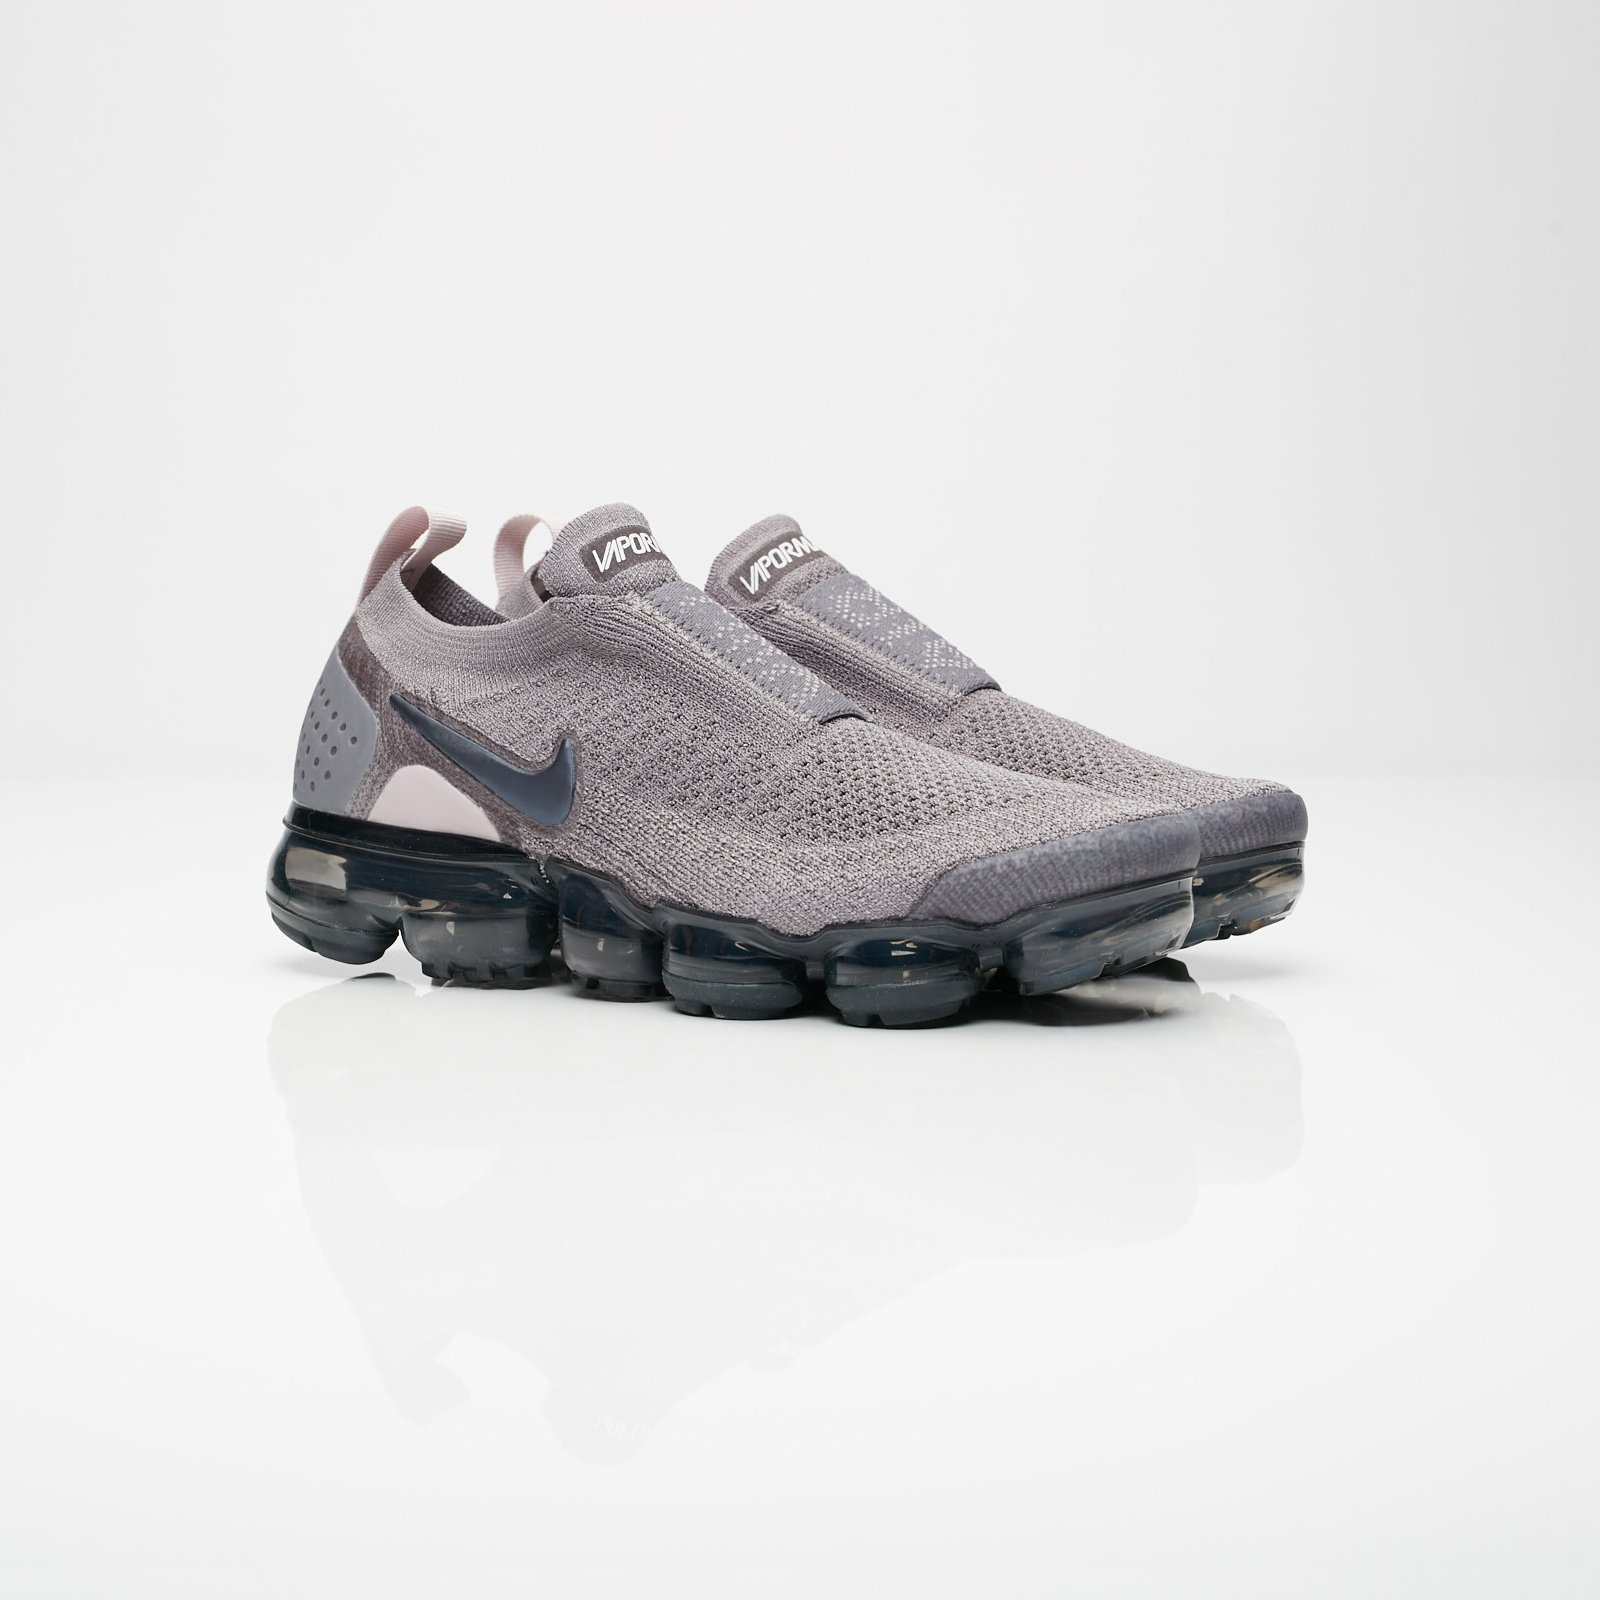 low priced 978ff 1986e Nike Wmns Air Vapormax FK Moc 2 - Aj6599-003 - Sneakersnstuff ...